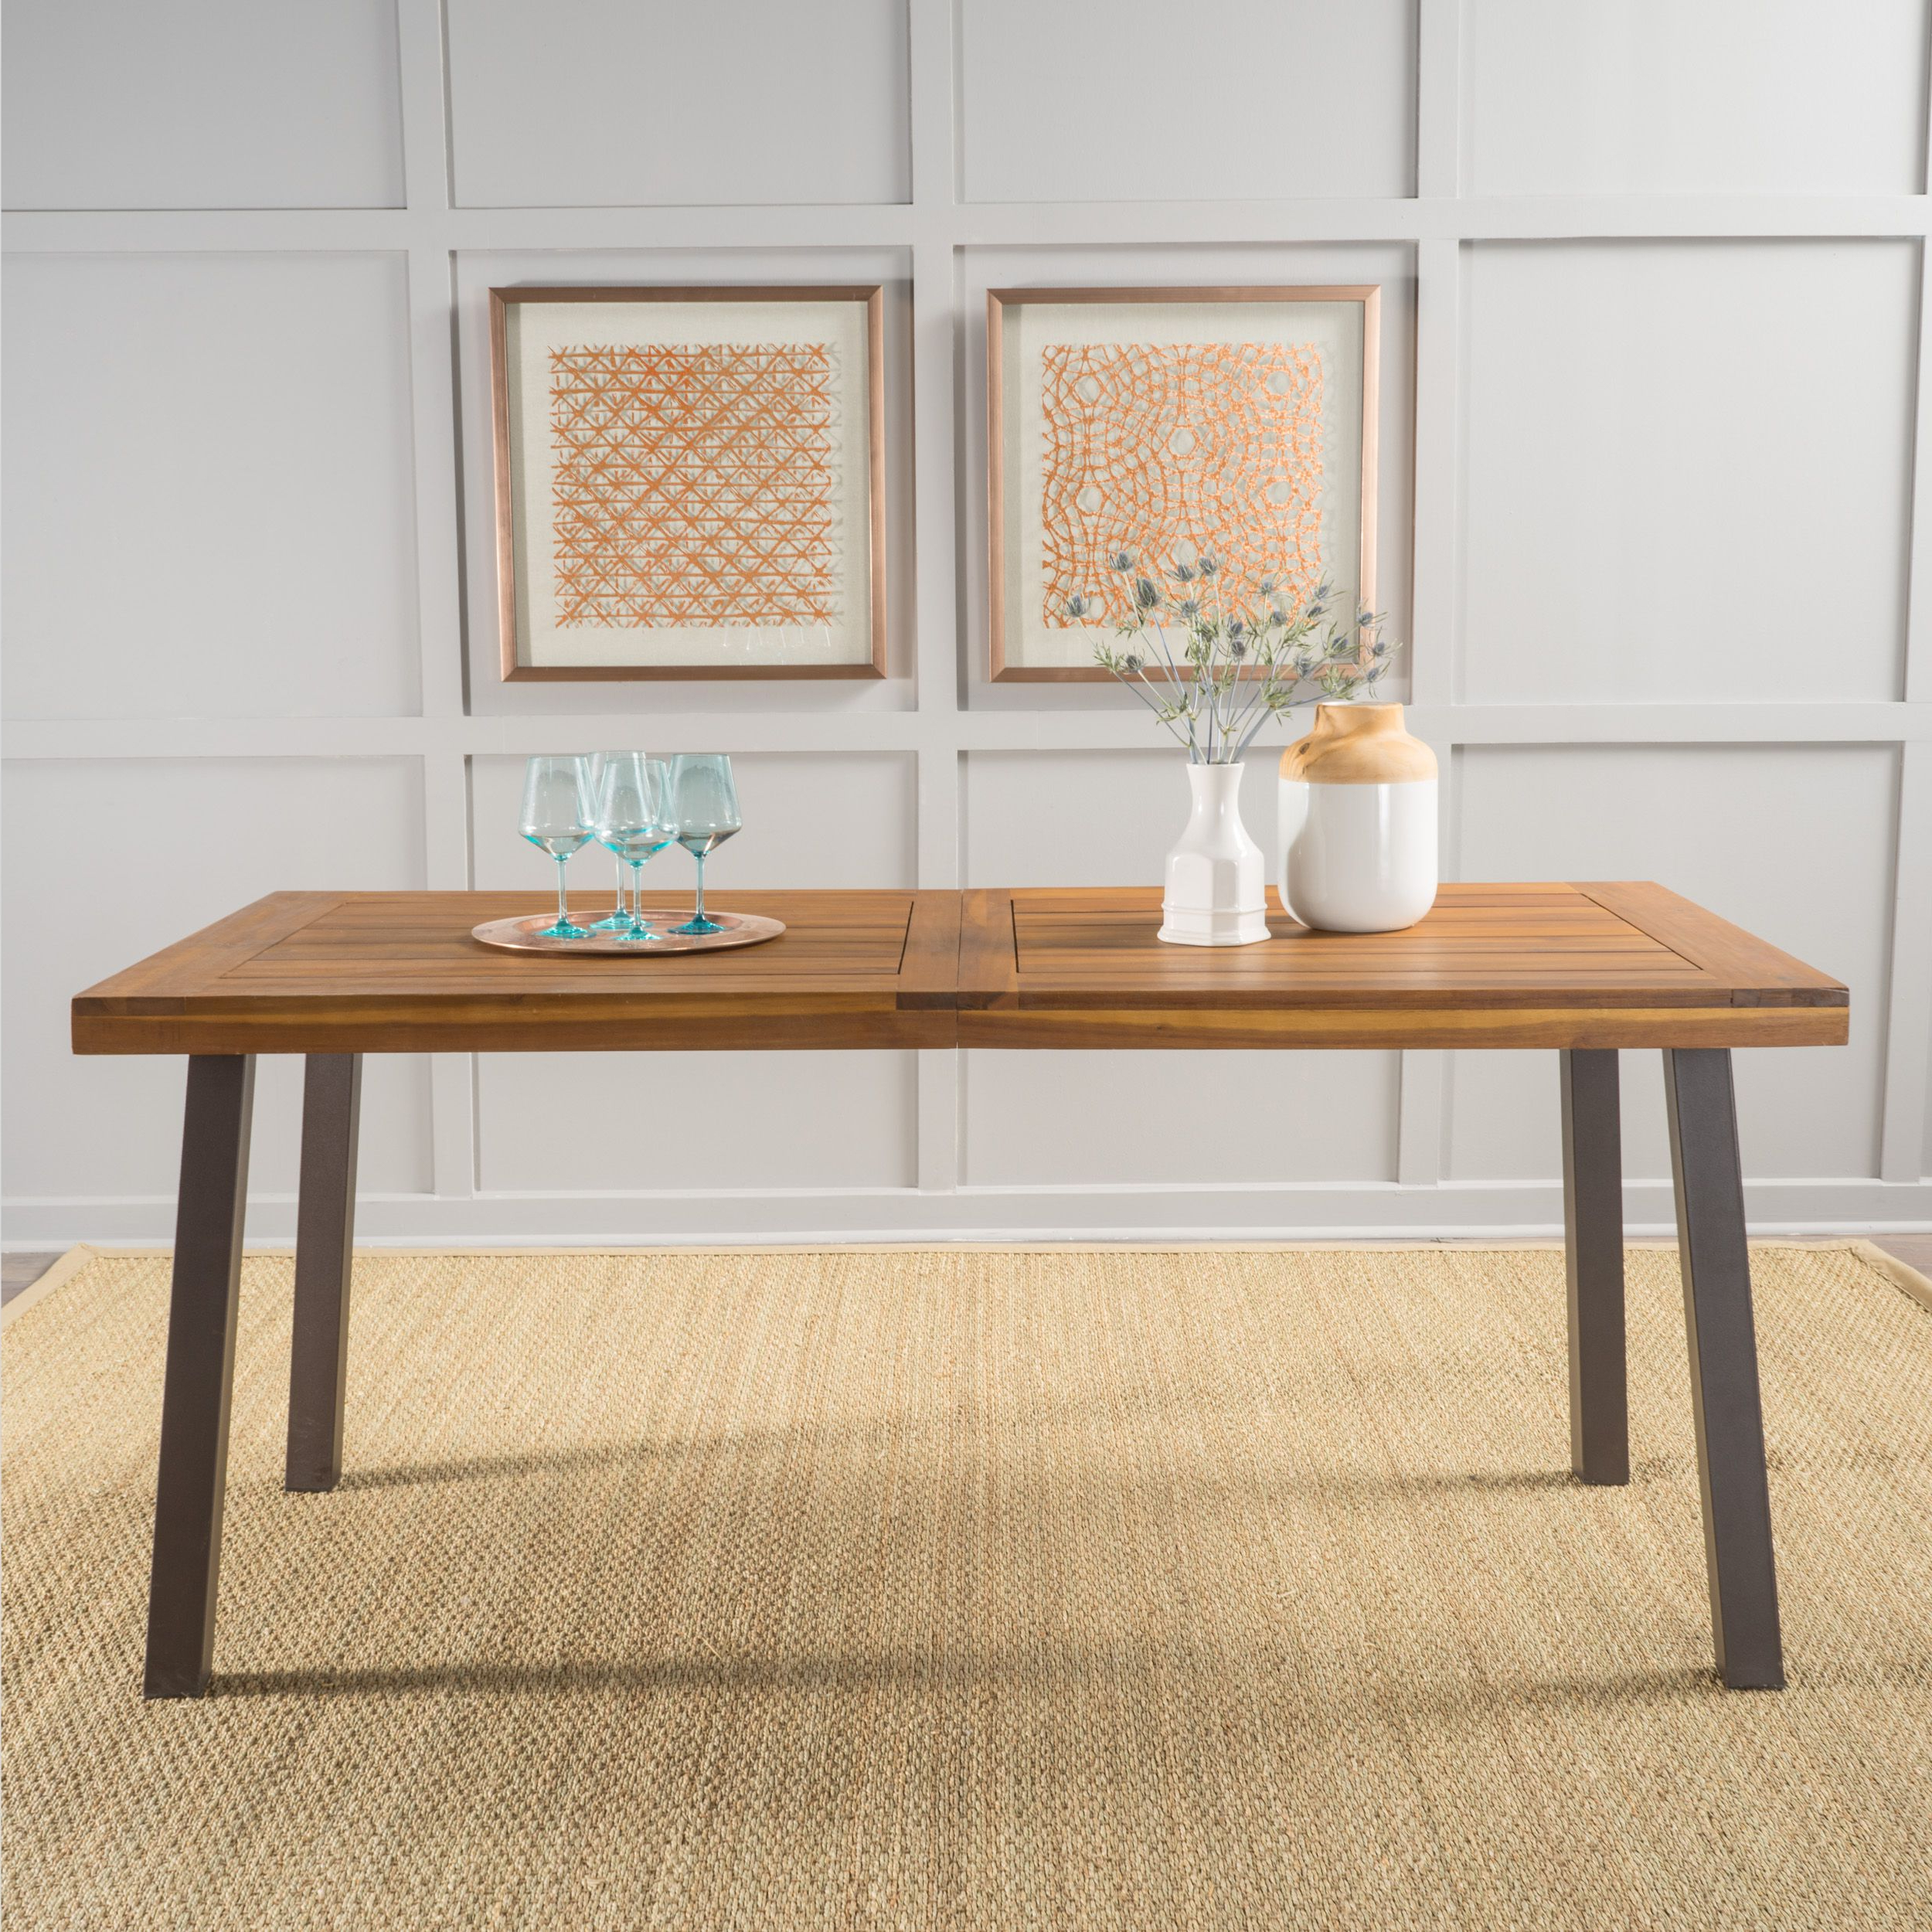 The 8 Best Dining Room Tables At Walmart In 2020 Inside Well Known Mid Century Rectangular Top Dining Tables With Wood Legs (View 29 of 30)